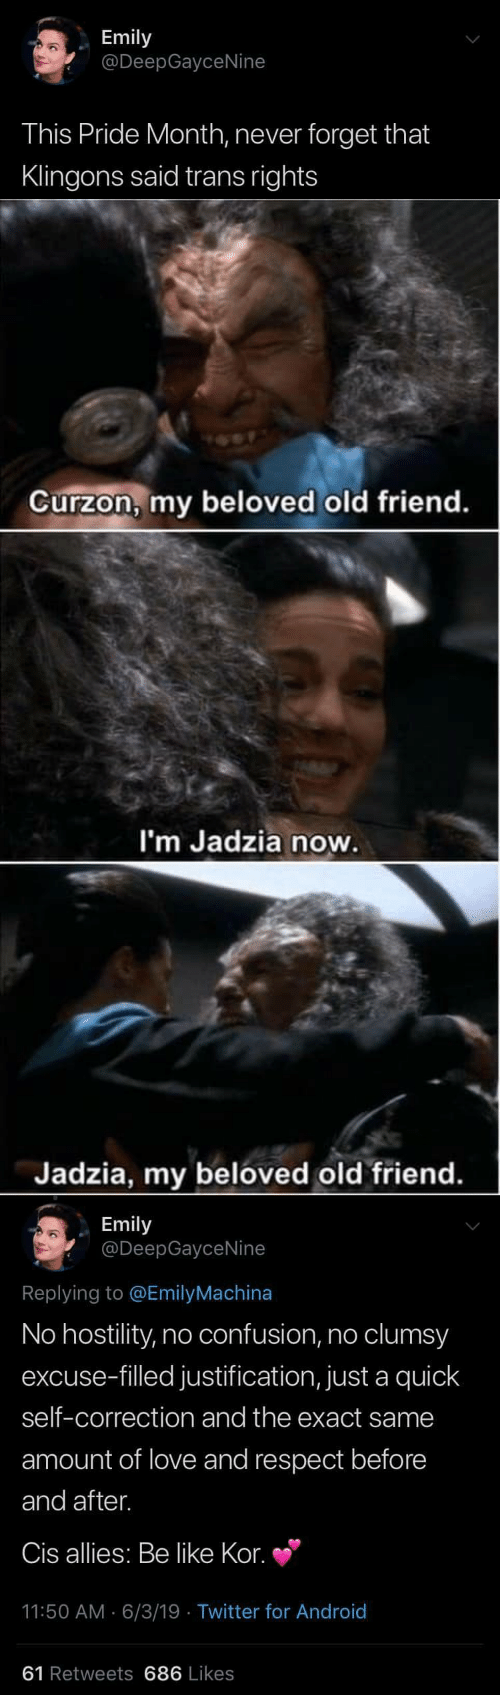 allies: Emily  @DeepGayceNine  This Pride Month, never forget that  Klingons said trans rights   Curzon, my beloved old friend.  I'm Jadzia now.  Jadzia, my beloved old friend.   Emily  @DeepGayceNine  Replying to @EmilyMachina  No hostility, no confusion, no clumsy  excuse-filled justification, just a quick  self-correction and the exact same  amount of love and respect before  and after.  Cis allies: Be like Kor.  11:50 AM 6/3/19 Twitter for And roid  61 Retweets 686 Likes